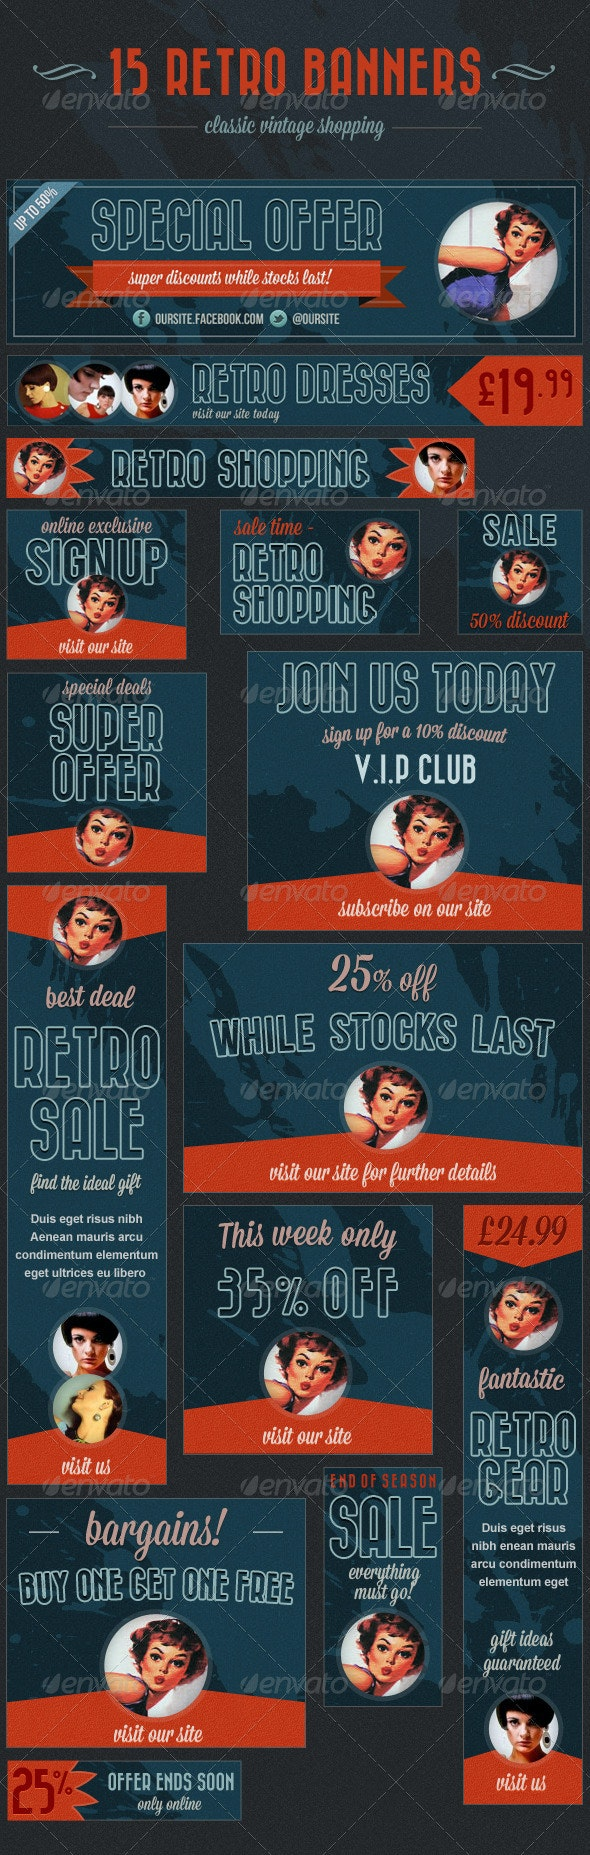 15 Retro Banners - Vintage Shopping Ads - Banners & Ads Web Elements